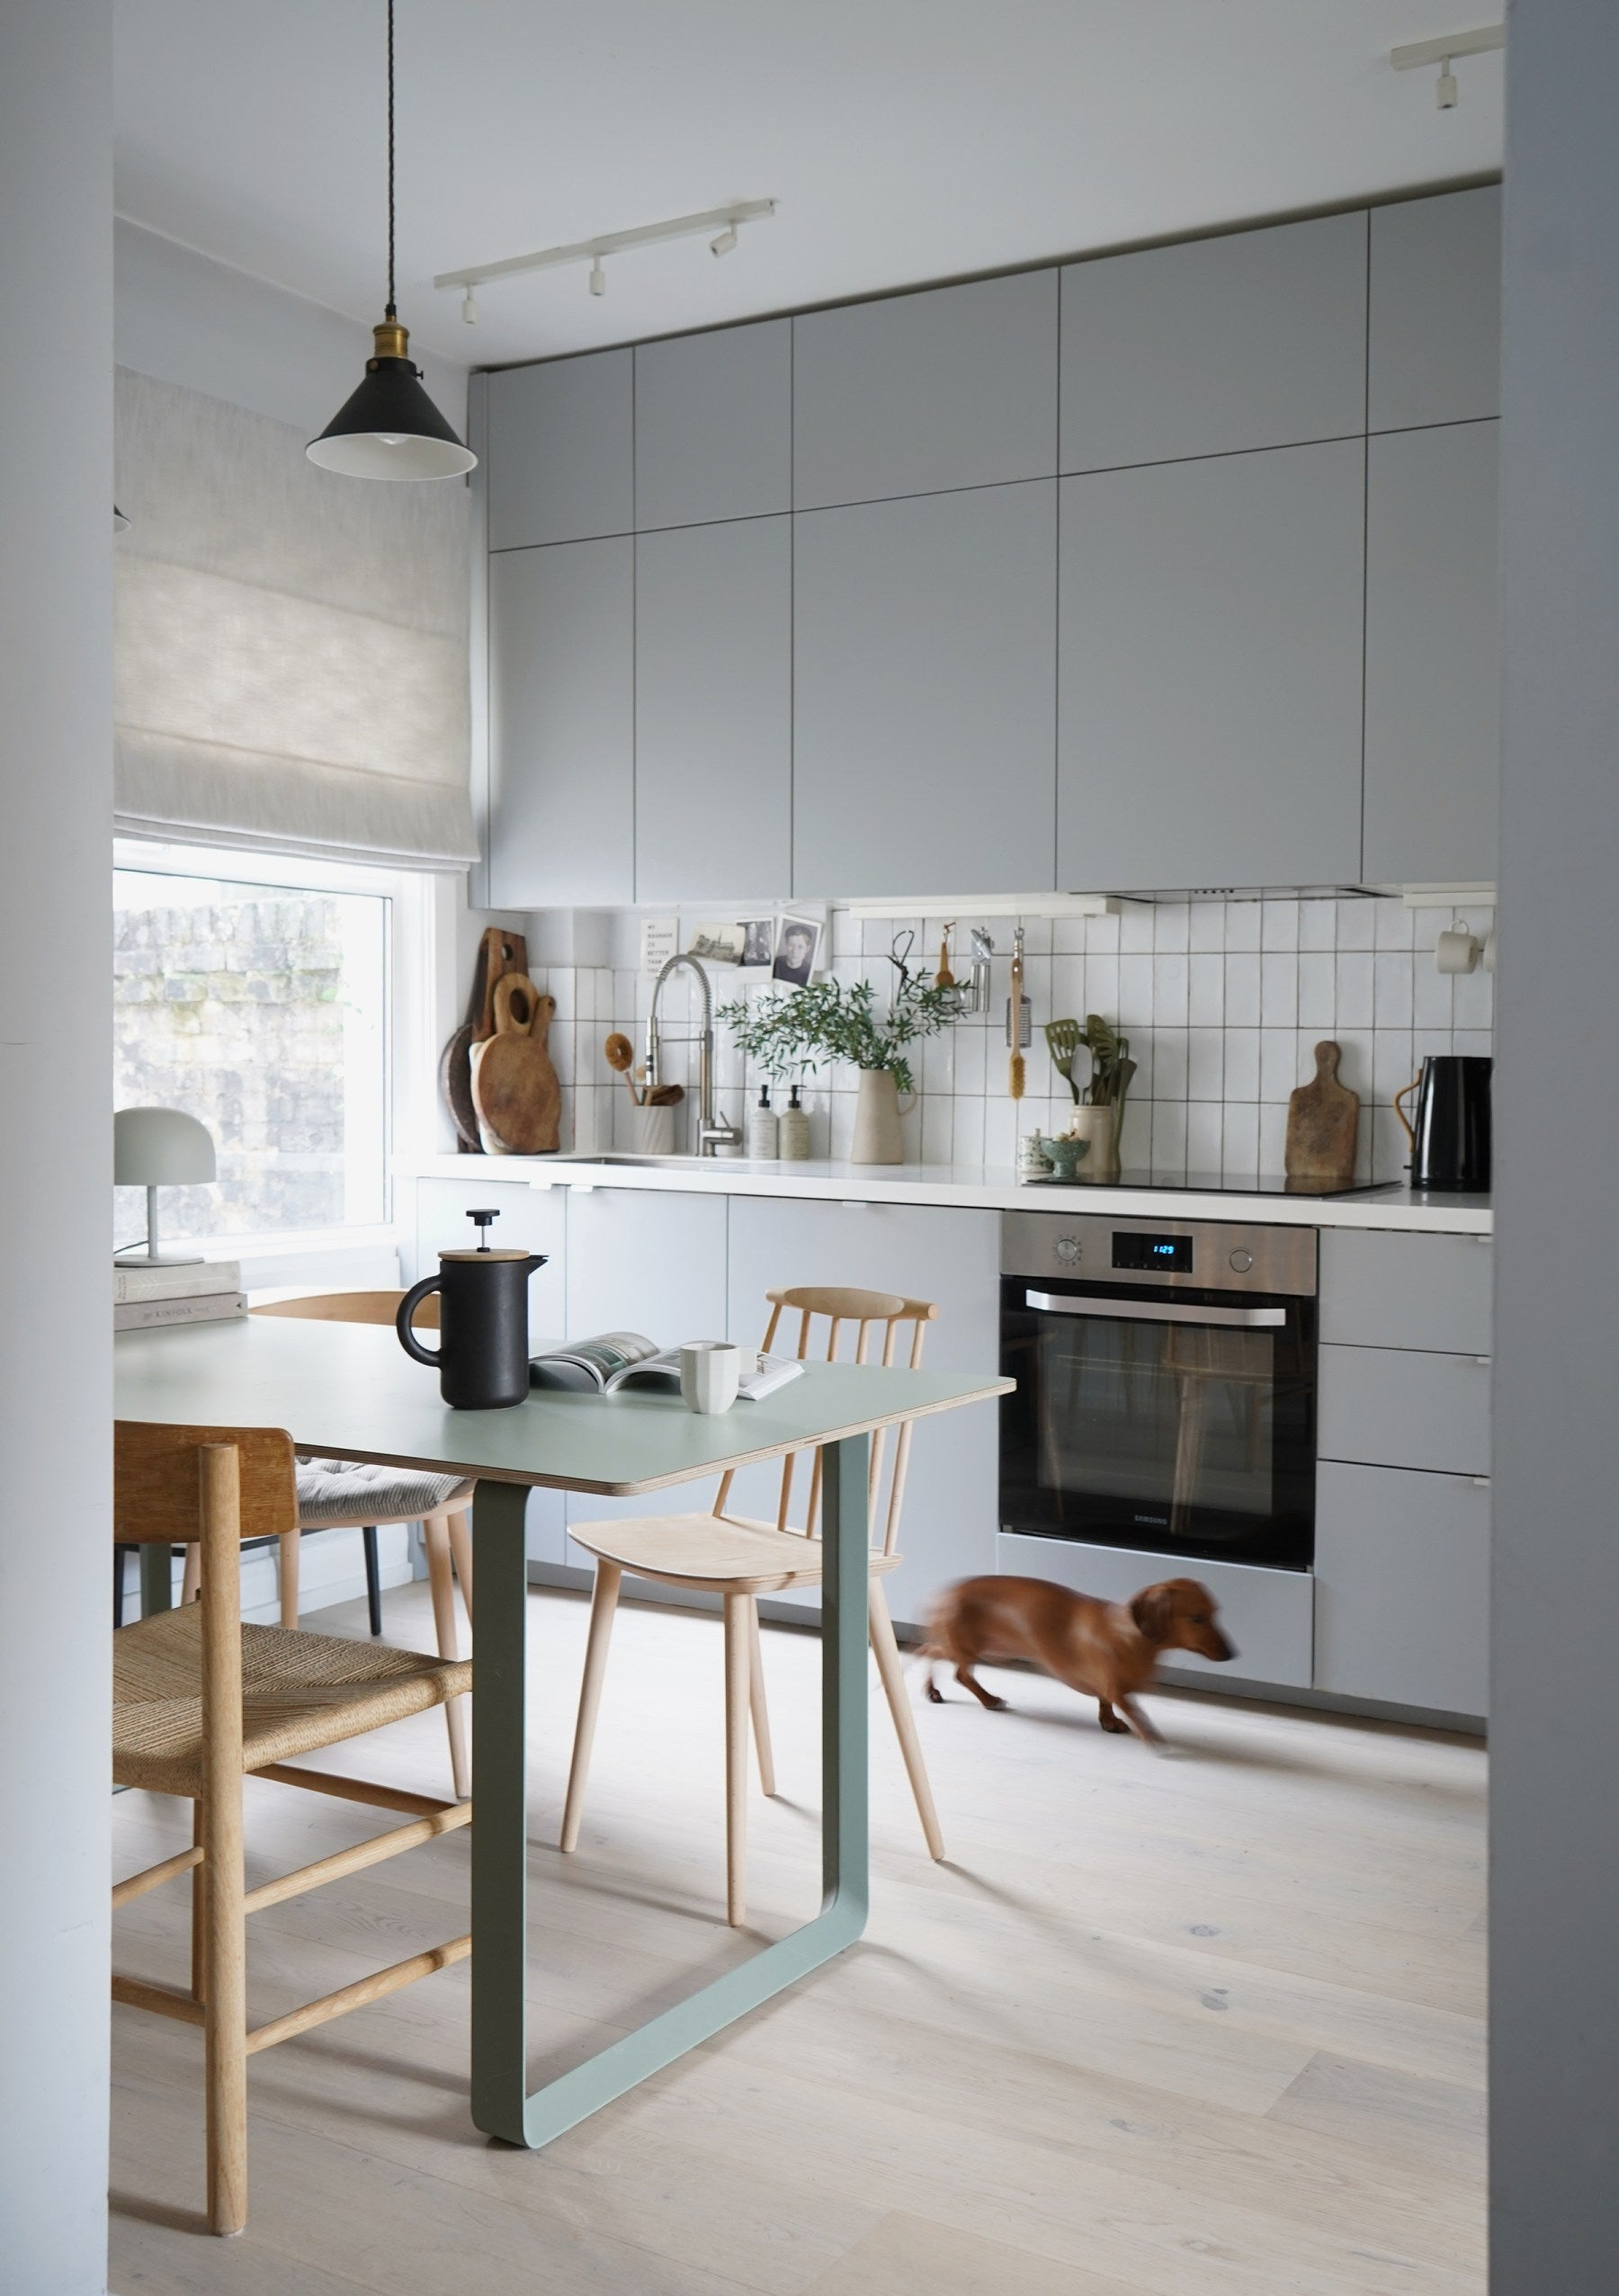 Modern grey kitchen with pale wood floor and mismatched dining chairs. Dachshund dog running across floor